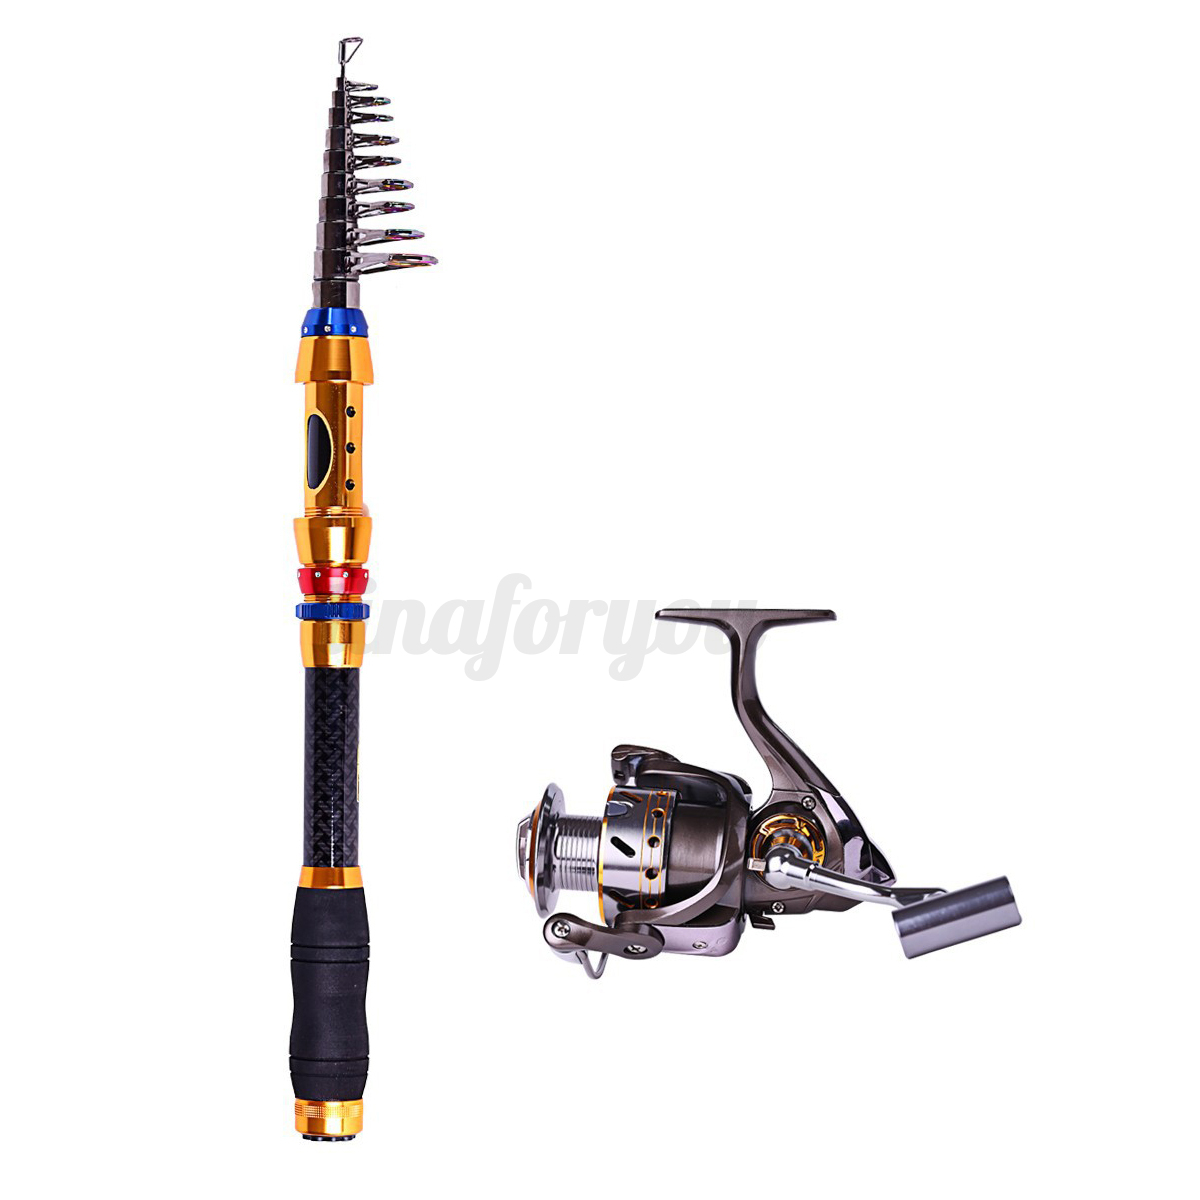 Saltwater freshwater telescopic fishing rod with reel for Ebay fishing poles